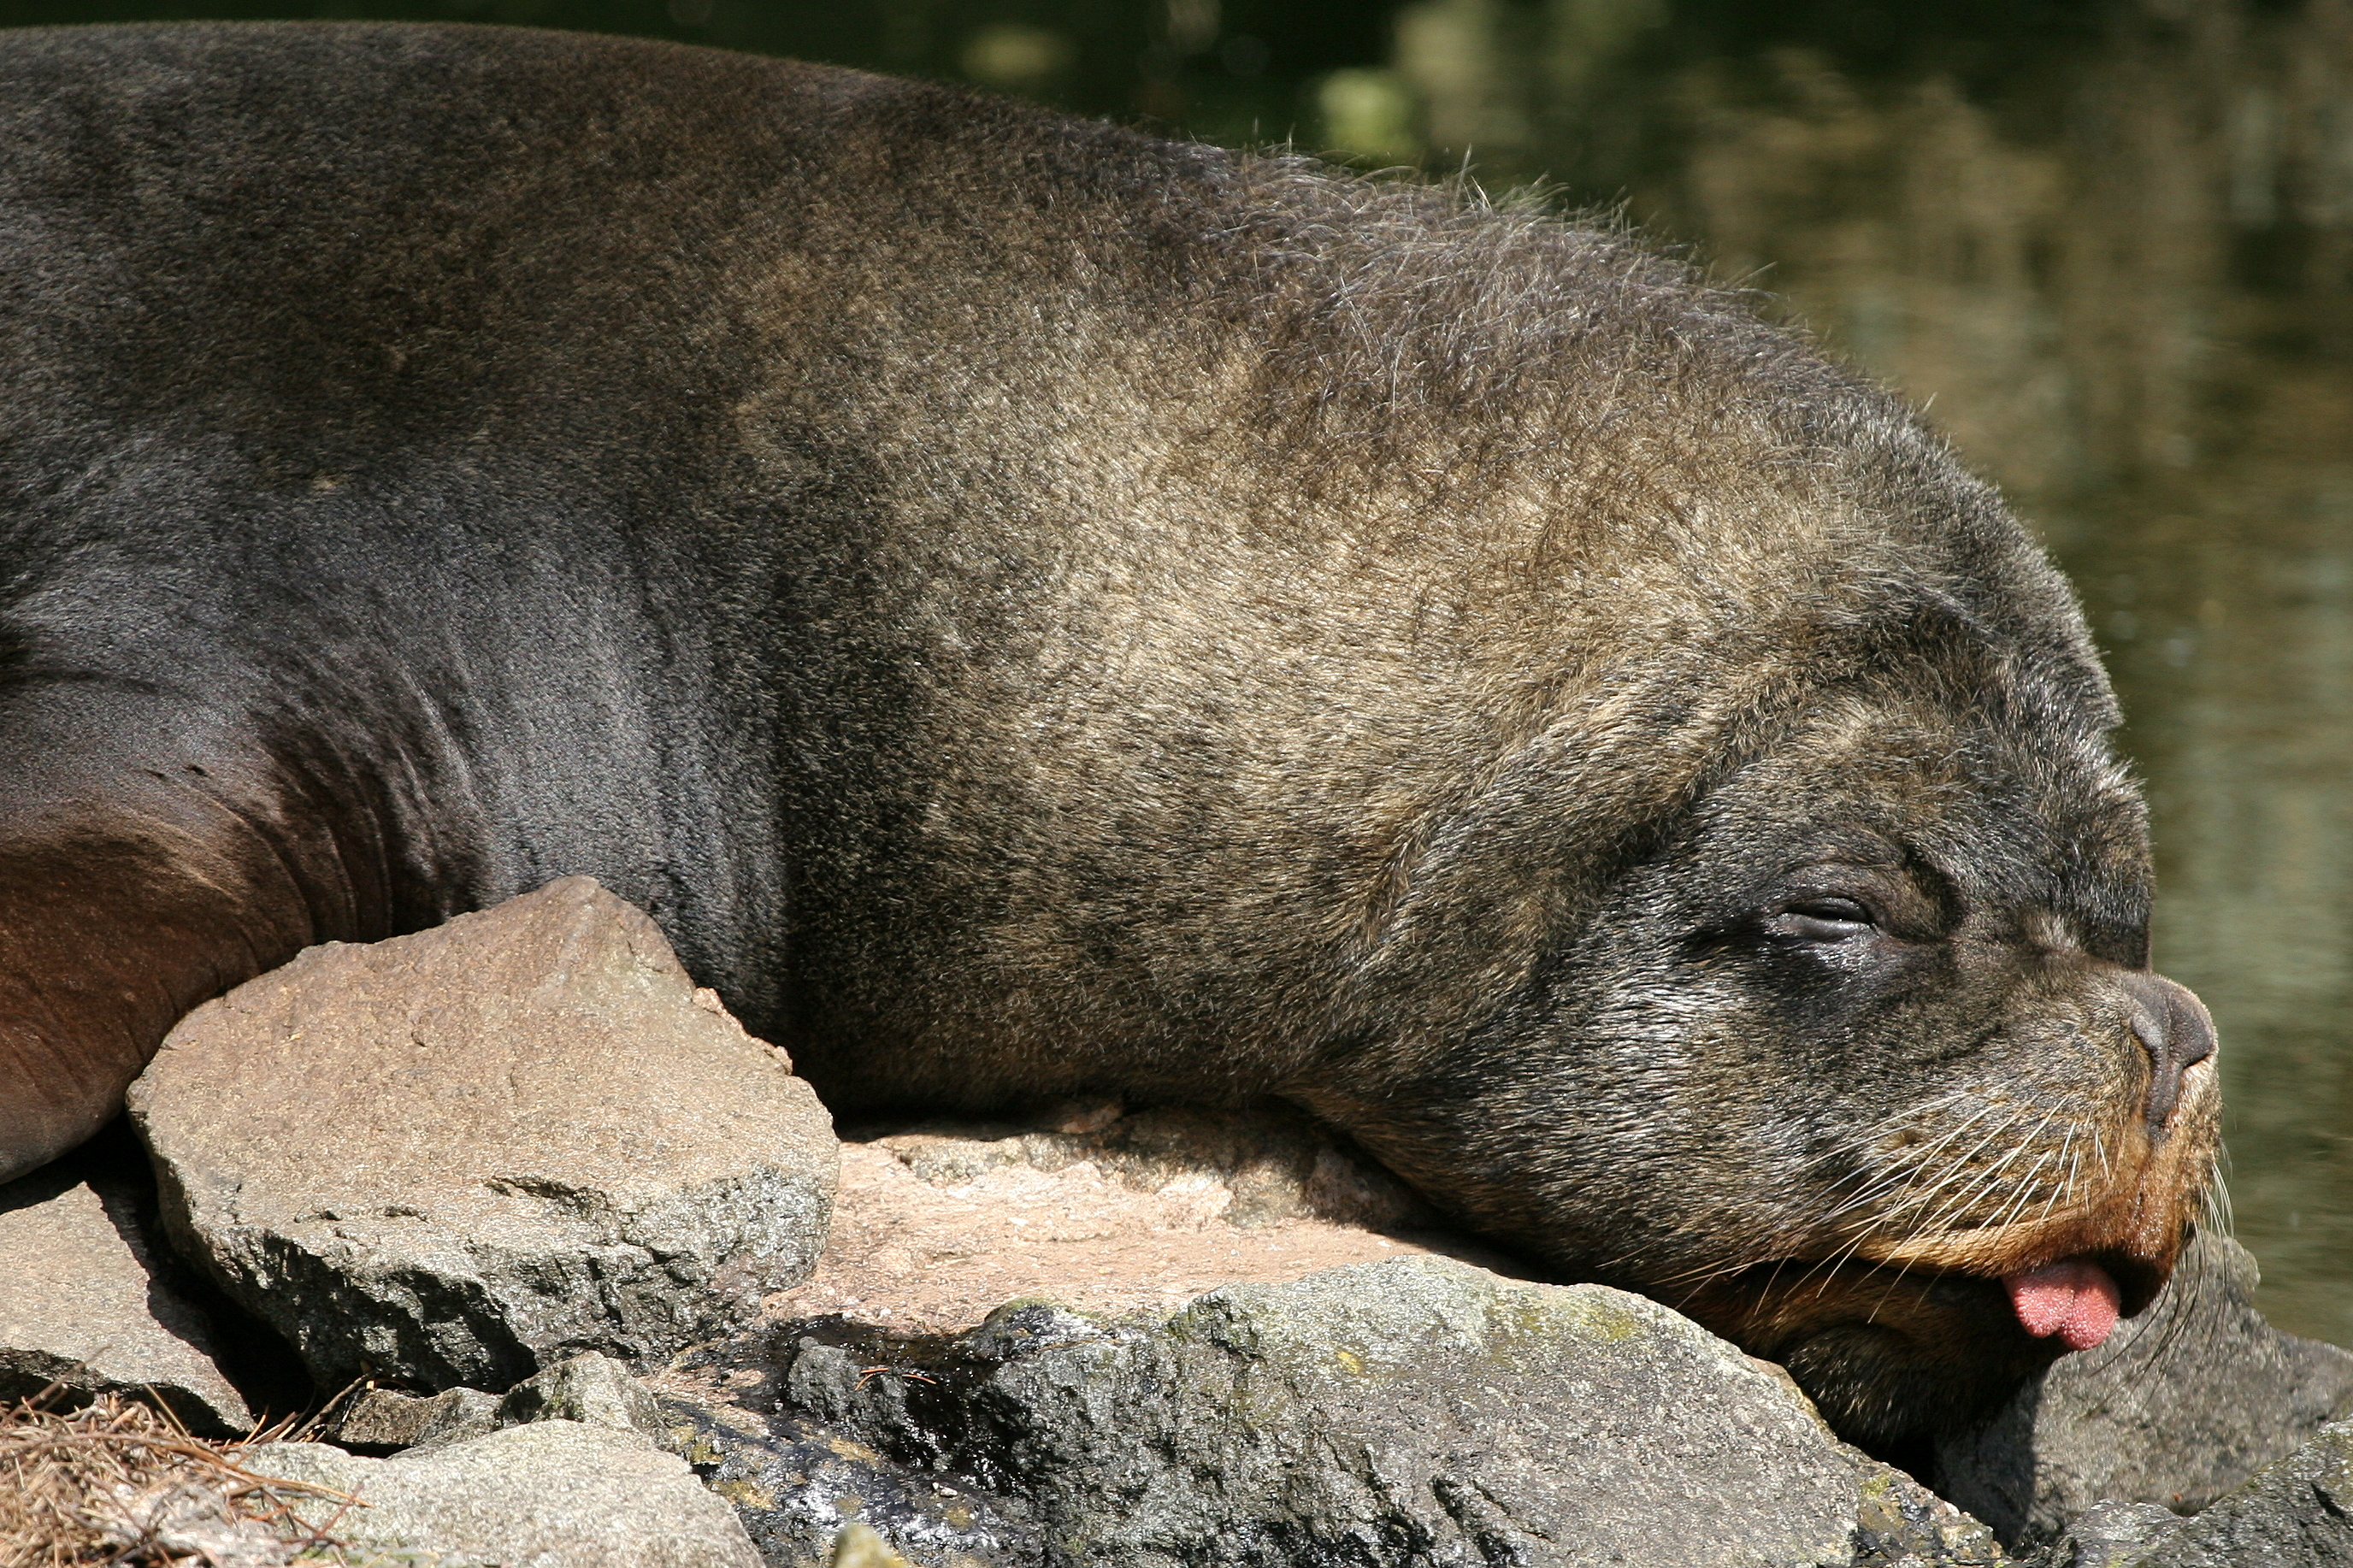 Sea lion exhaustion